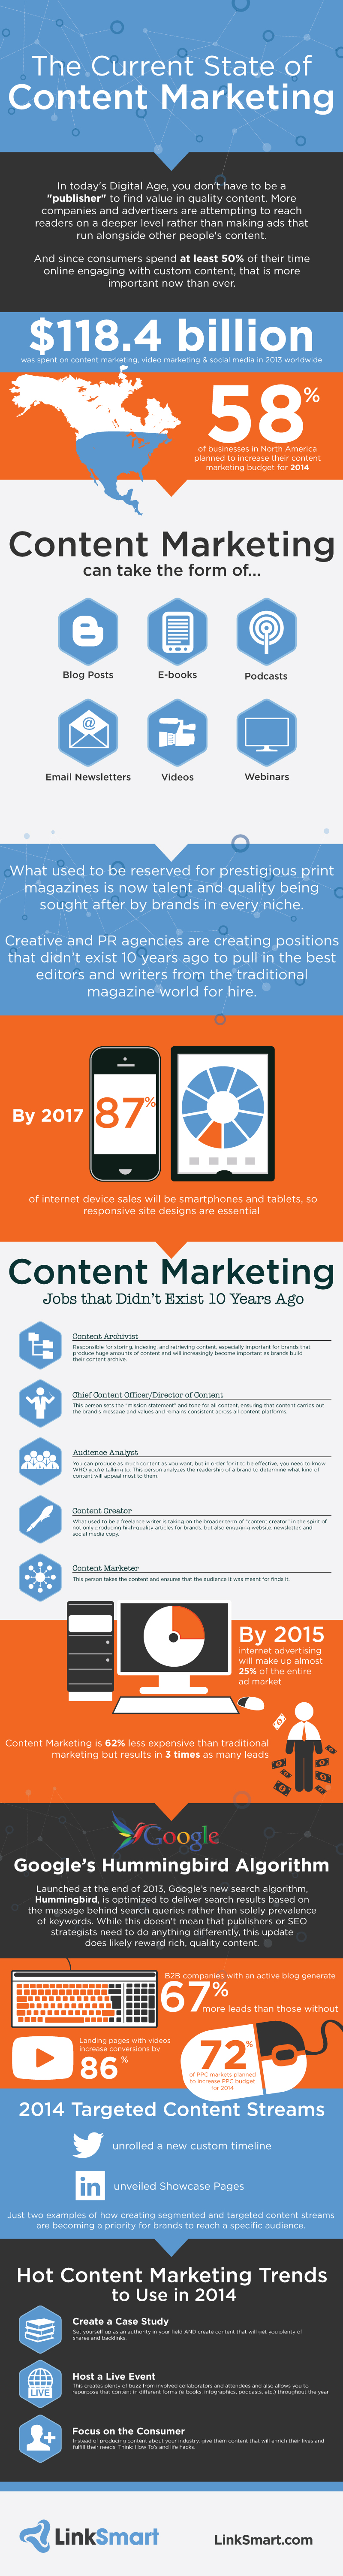 state-of-content-marketing-infographic